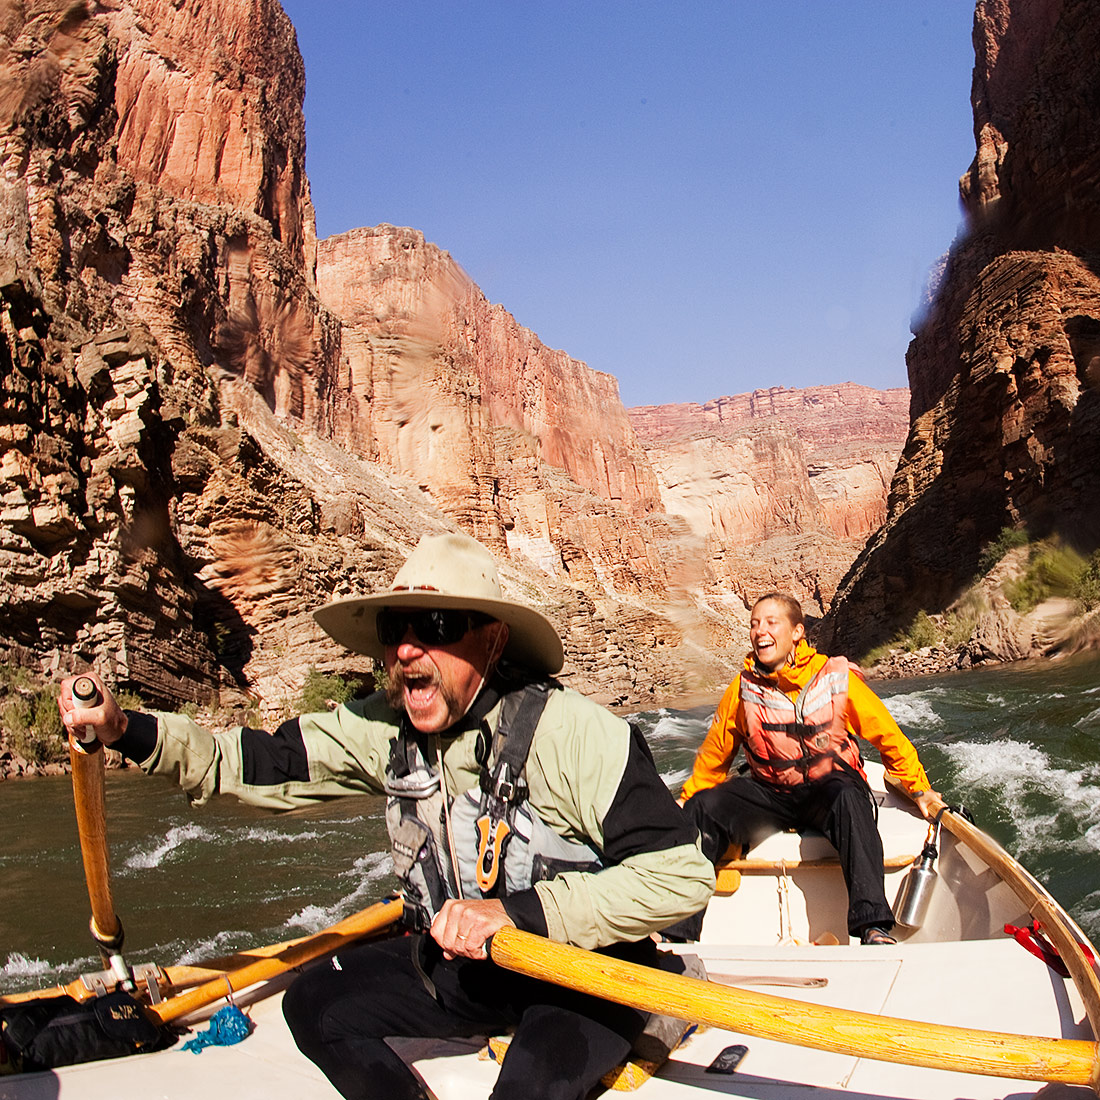 Colorado River rafting in the Grand Canyon